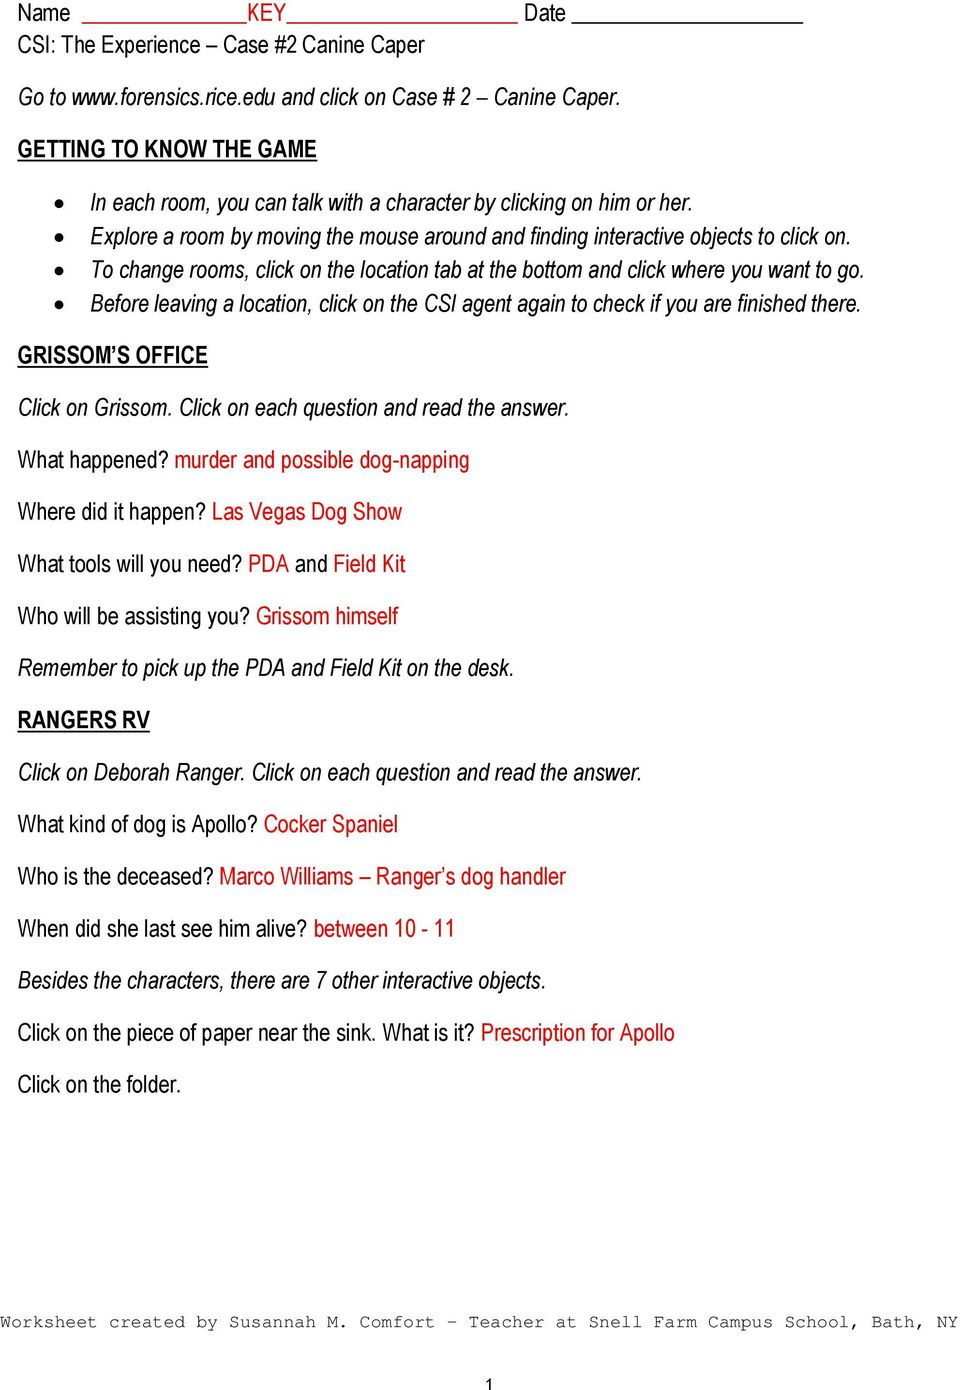 worksheet Crime Scene Basics Worksheet 2 Answers name key date csi the experience case 2 canine caper click on to change rooms location tab at bottom and where you